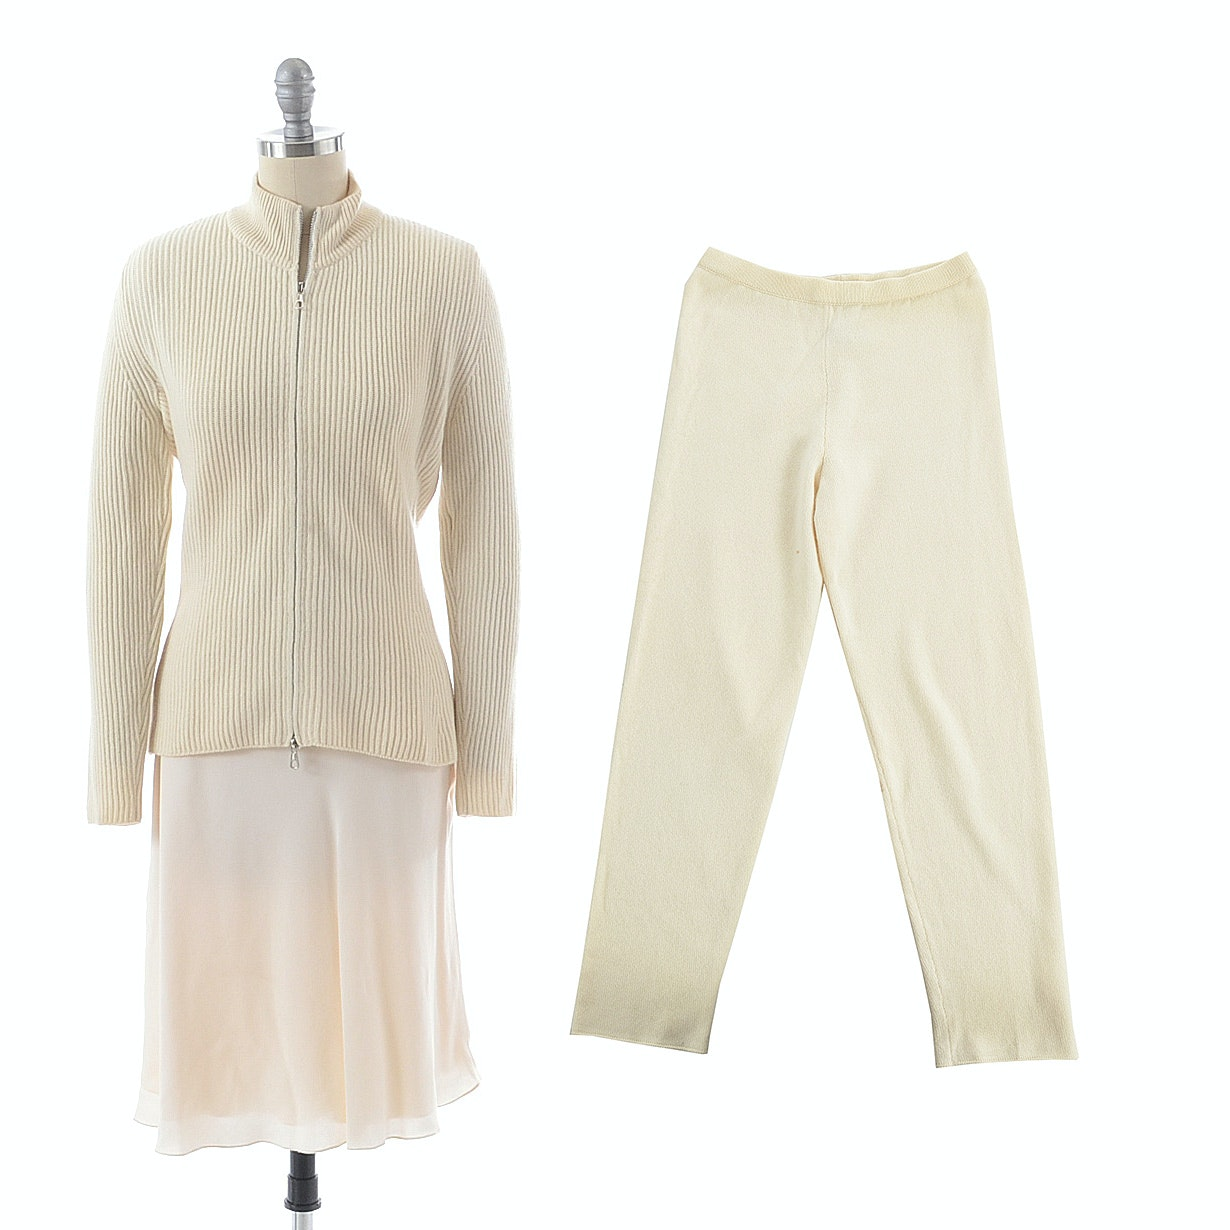 Trillion Brand Cashmere Zipper Front Cardigan Sweater Paired with Calvin Klein Silk Chiffon Skirt in Ivory